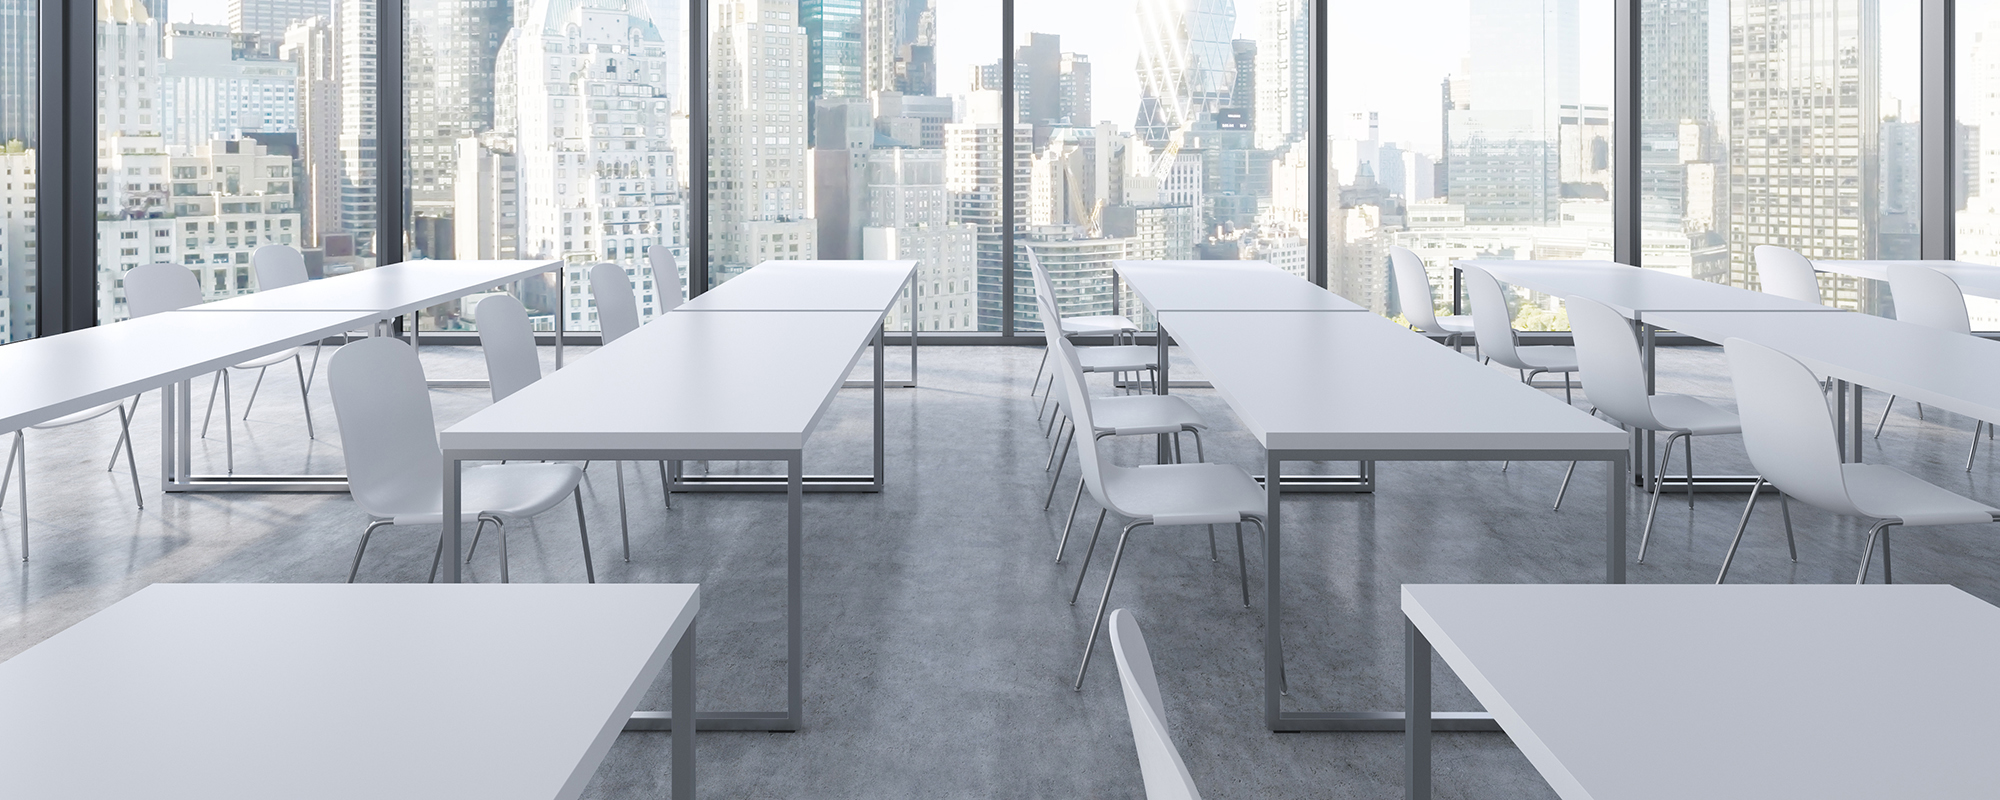 A modern panoramic classroom with New York view. White tables and white chairs. 3D rendering.